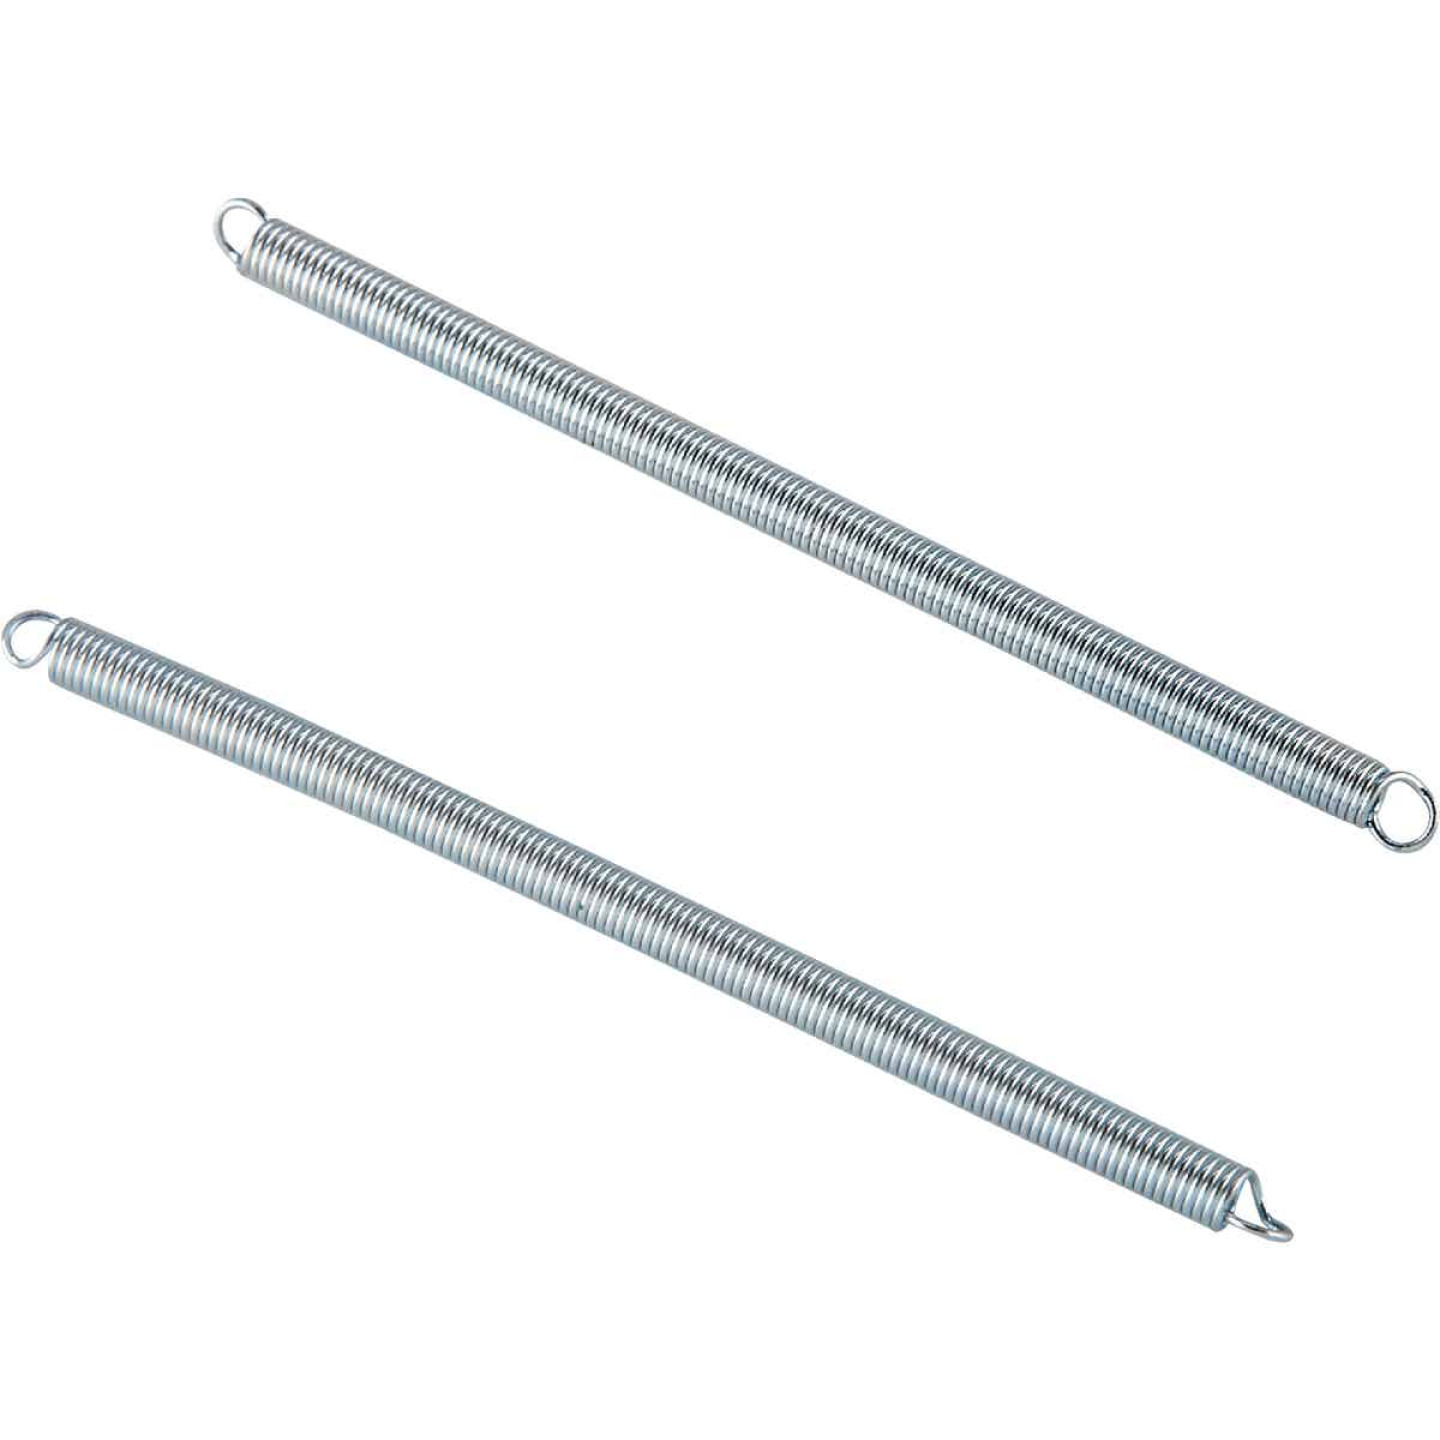 Century Spring 1-1/2 In. x 5/16 In. Extension Spring (2 Count) Image 1